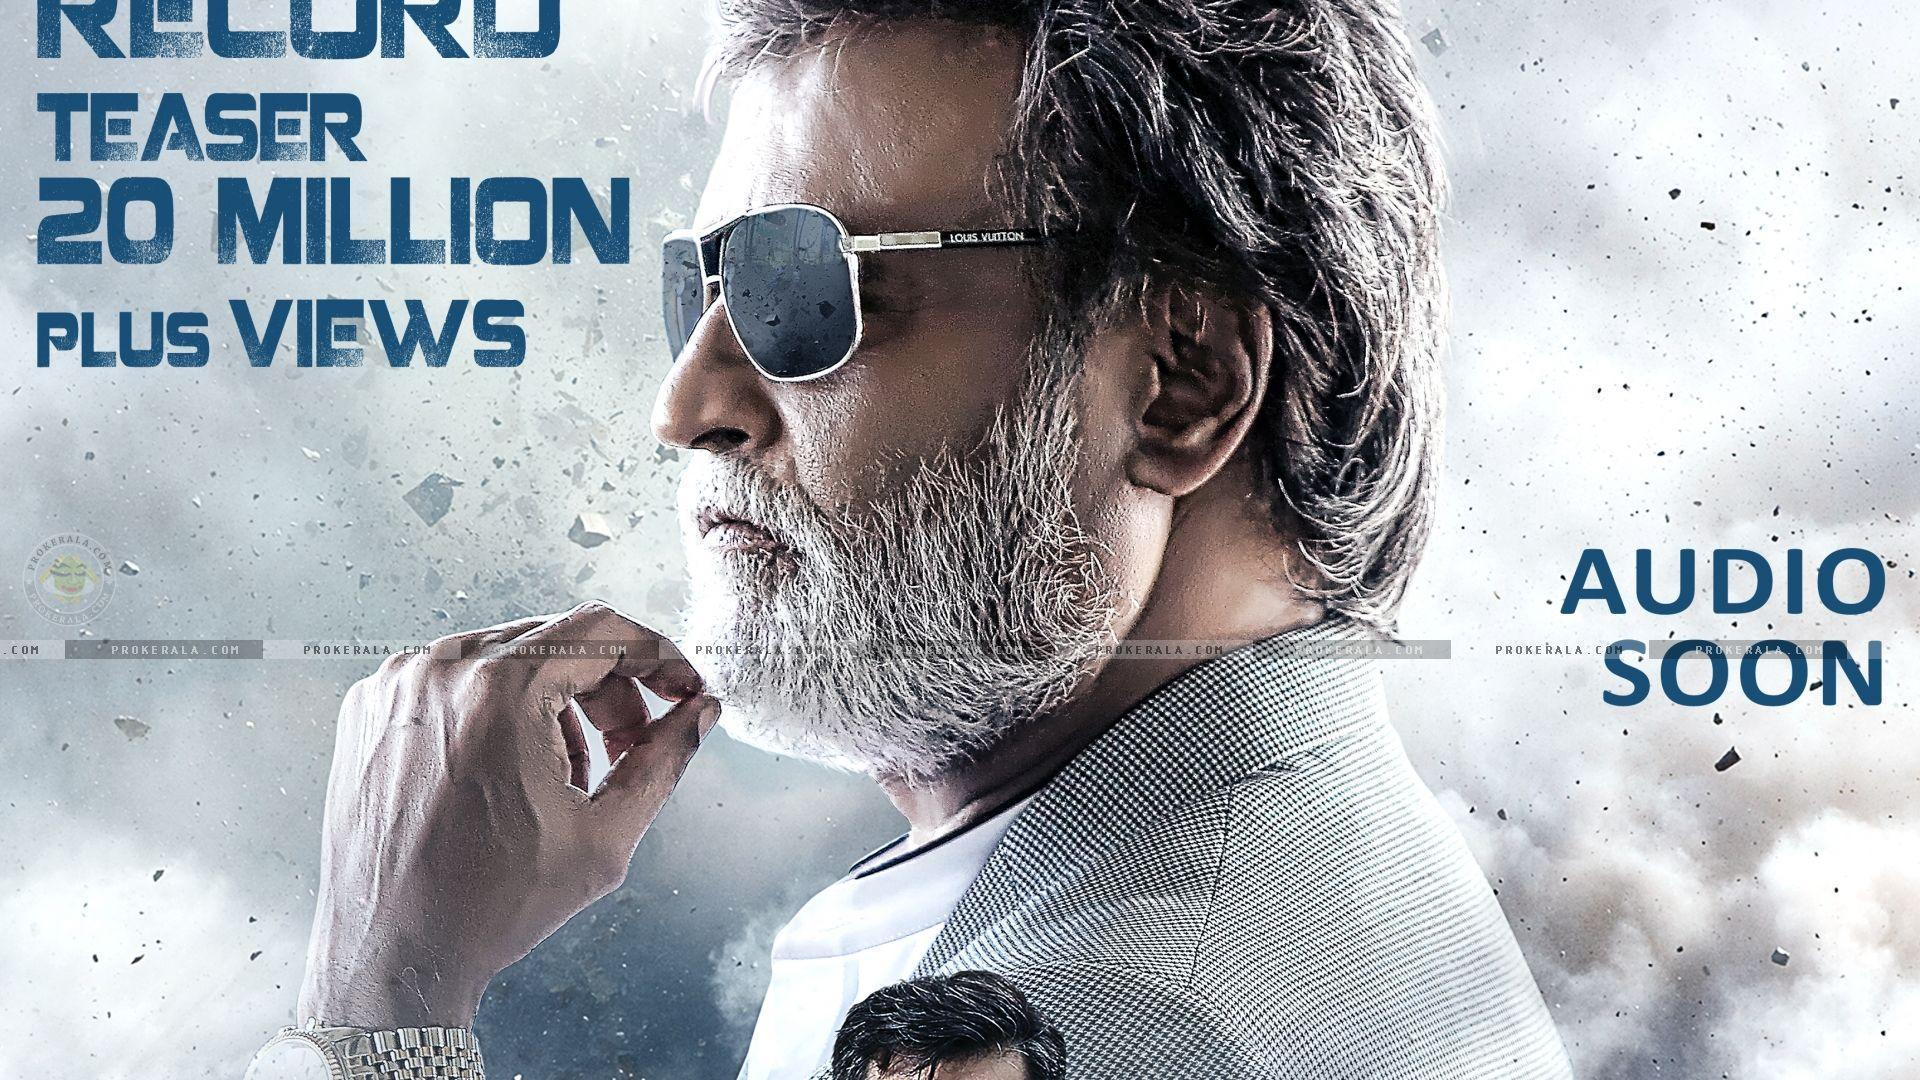 Kabali hd Wallpapers |Rajinikanth Images